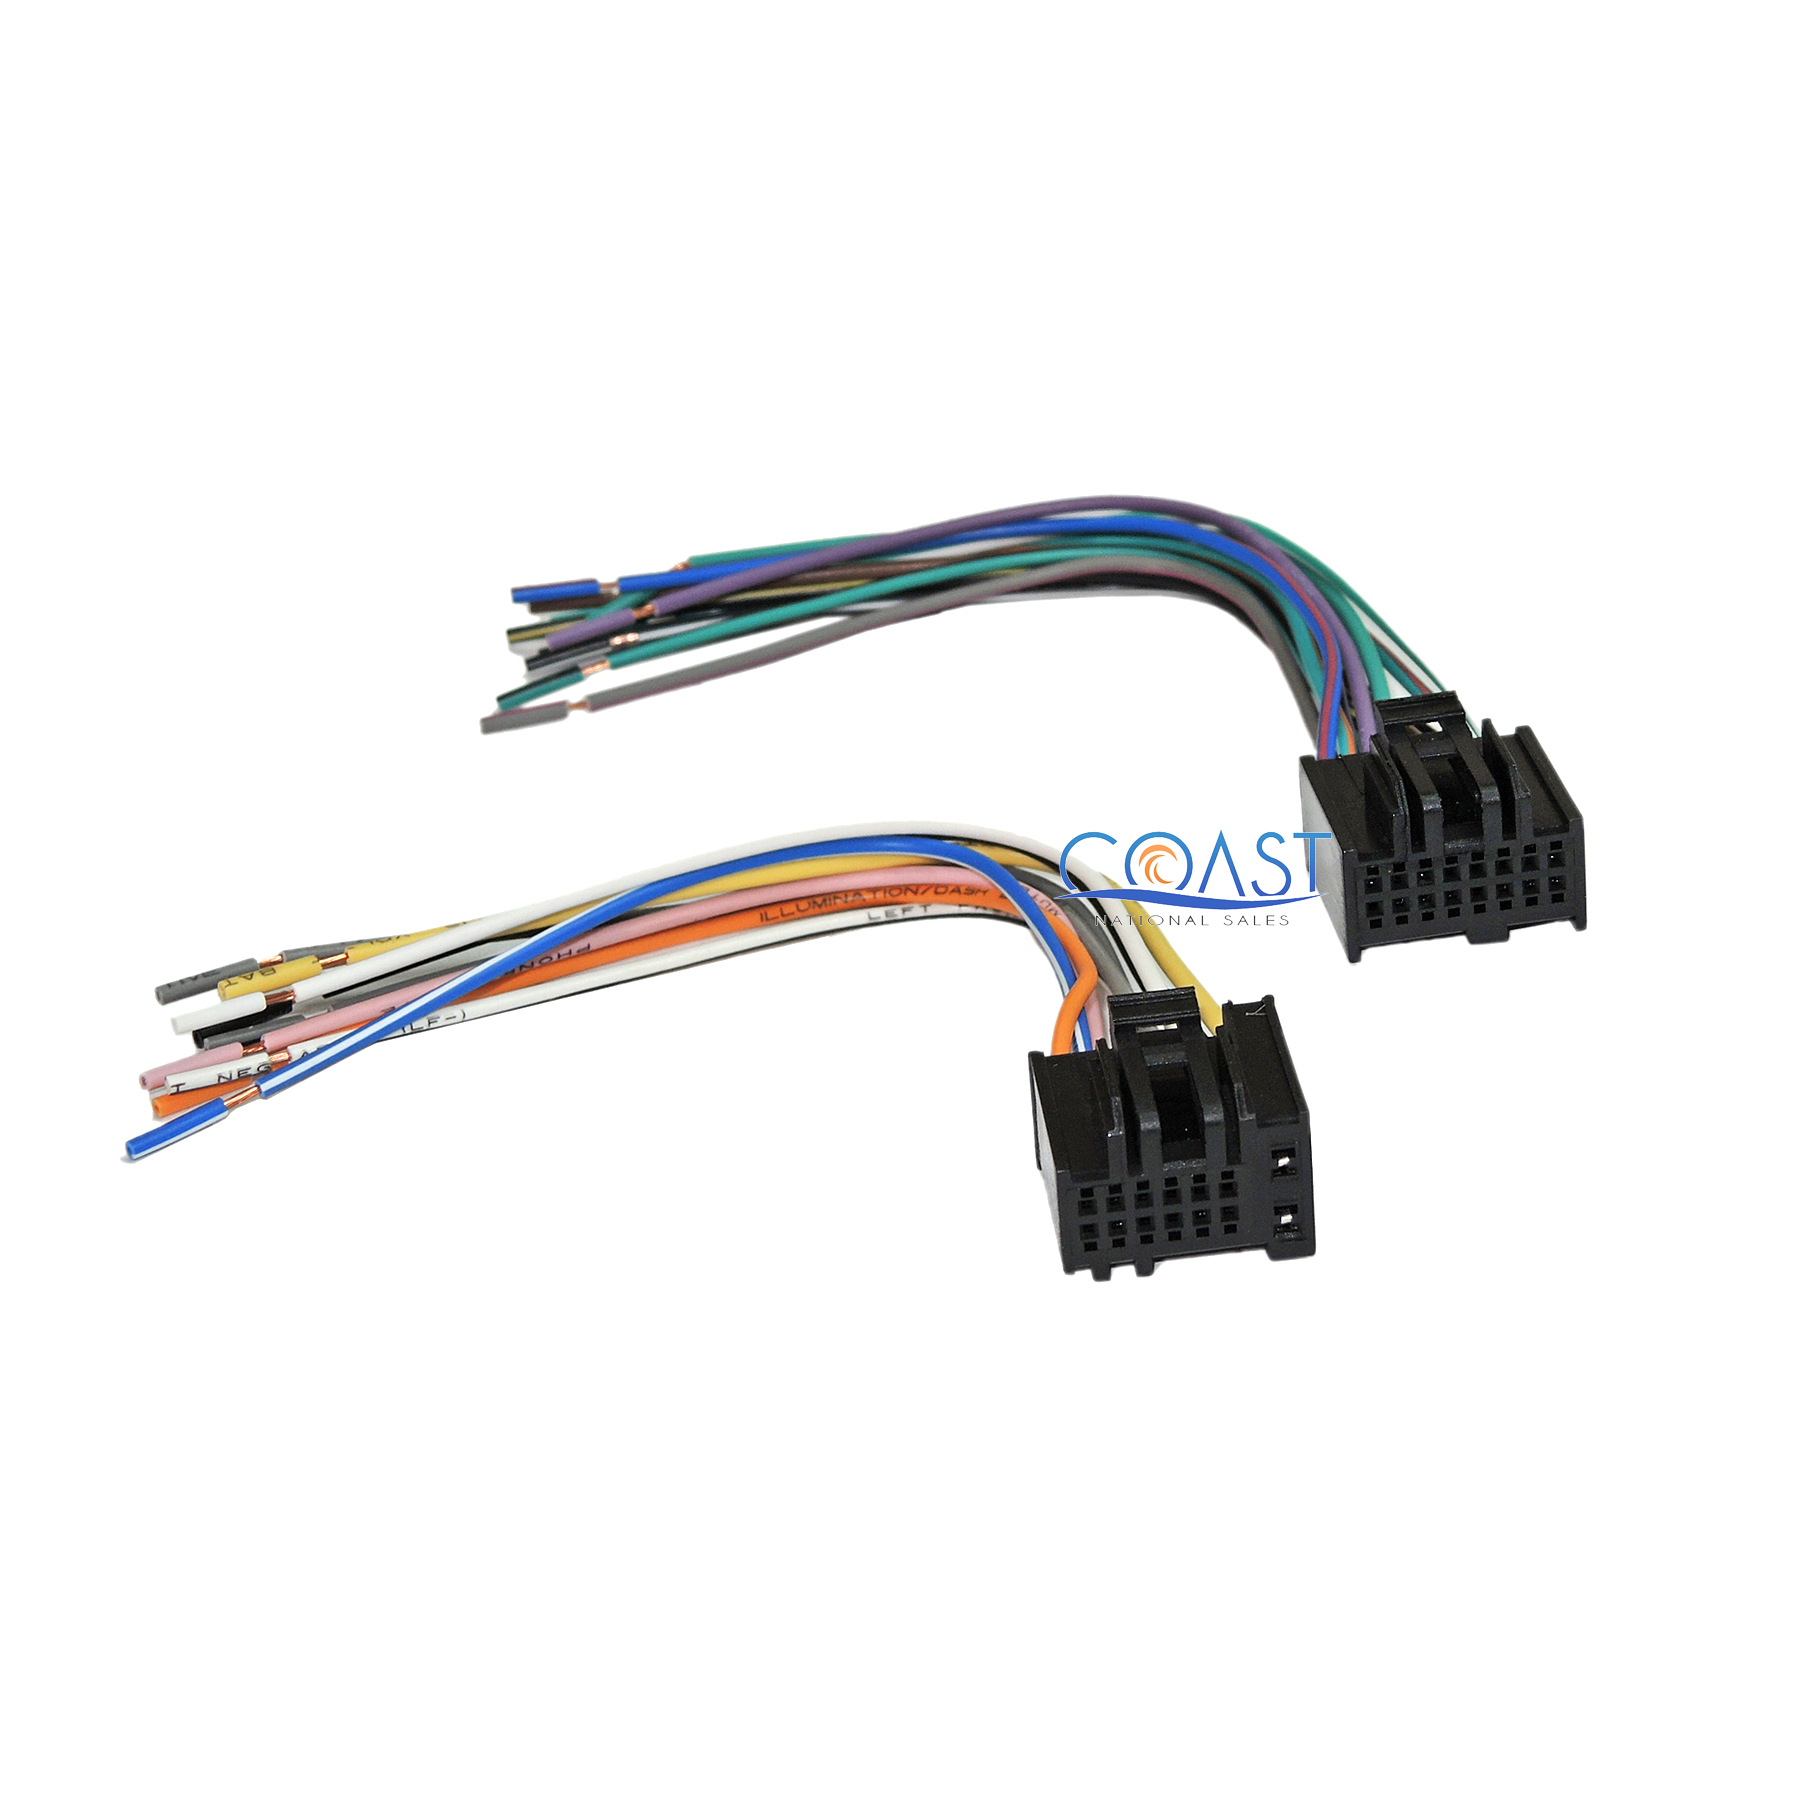 WRG-5951] 2003 Chevy Silverado Radio Wiring Harness Color Code on